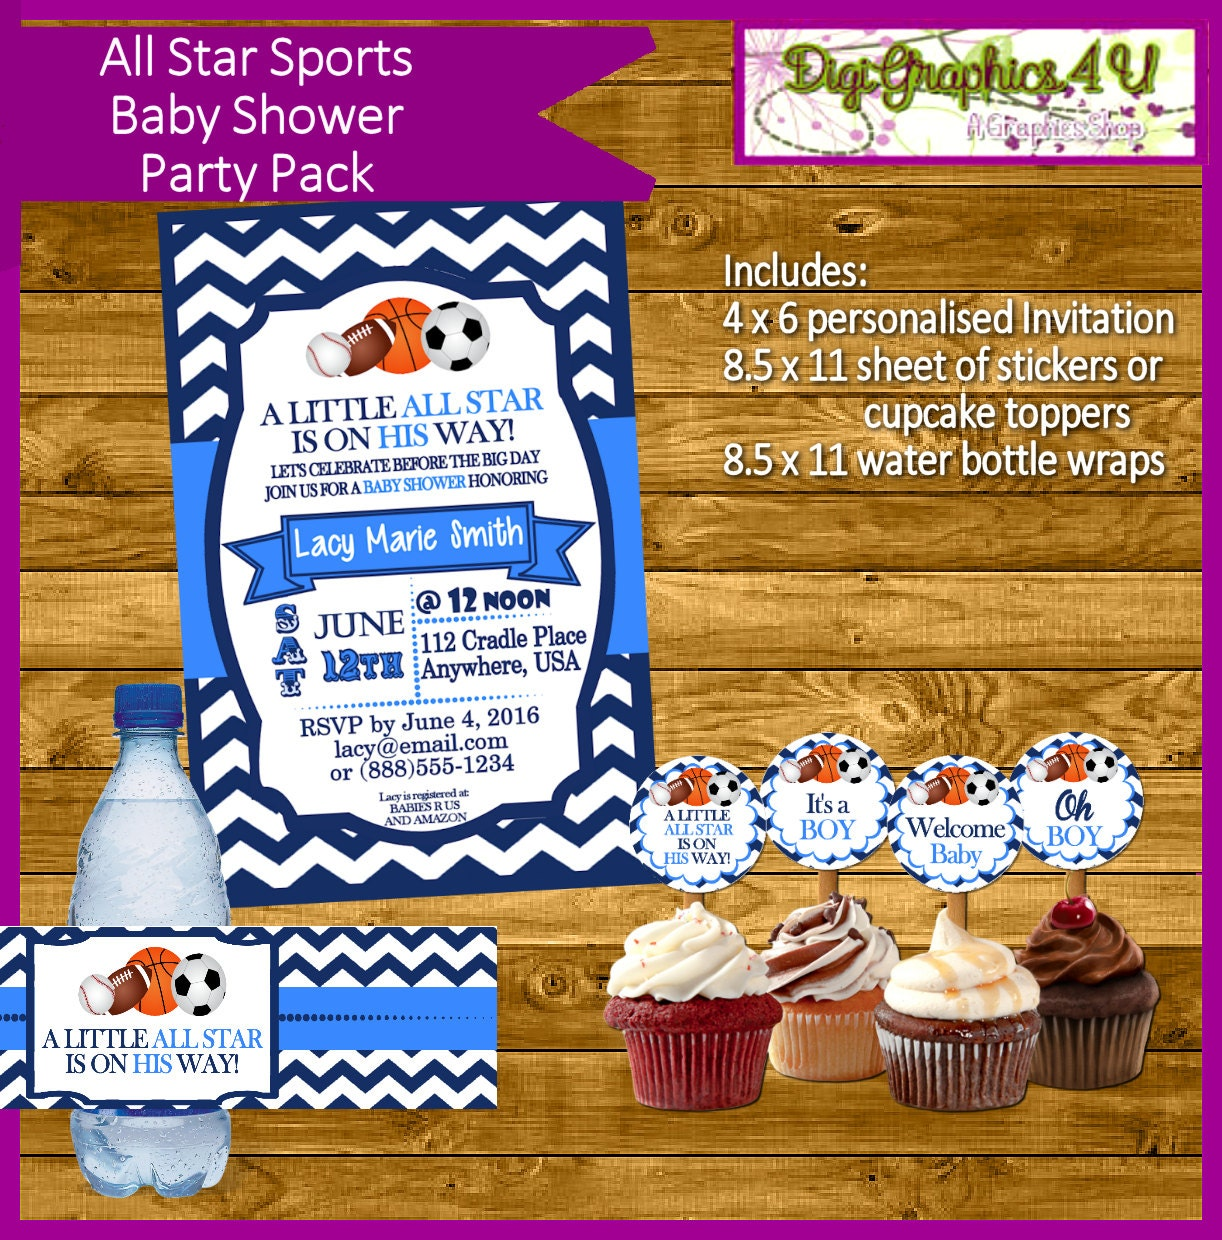 sports all star baby shower party pack by digigraphics4u on etsy